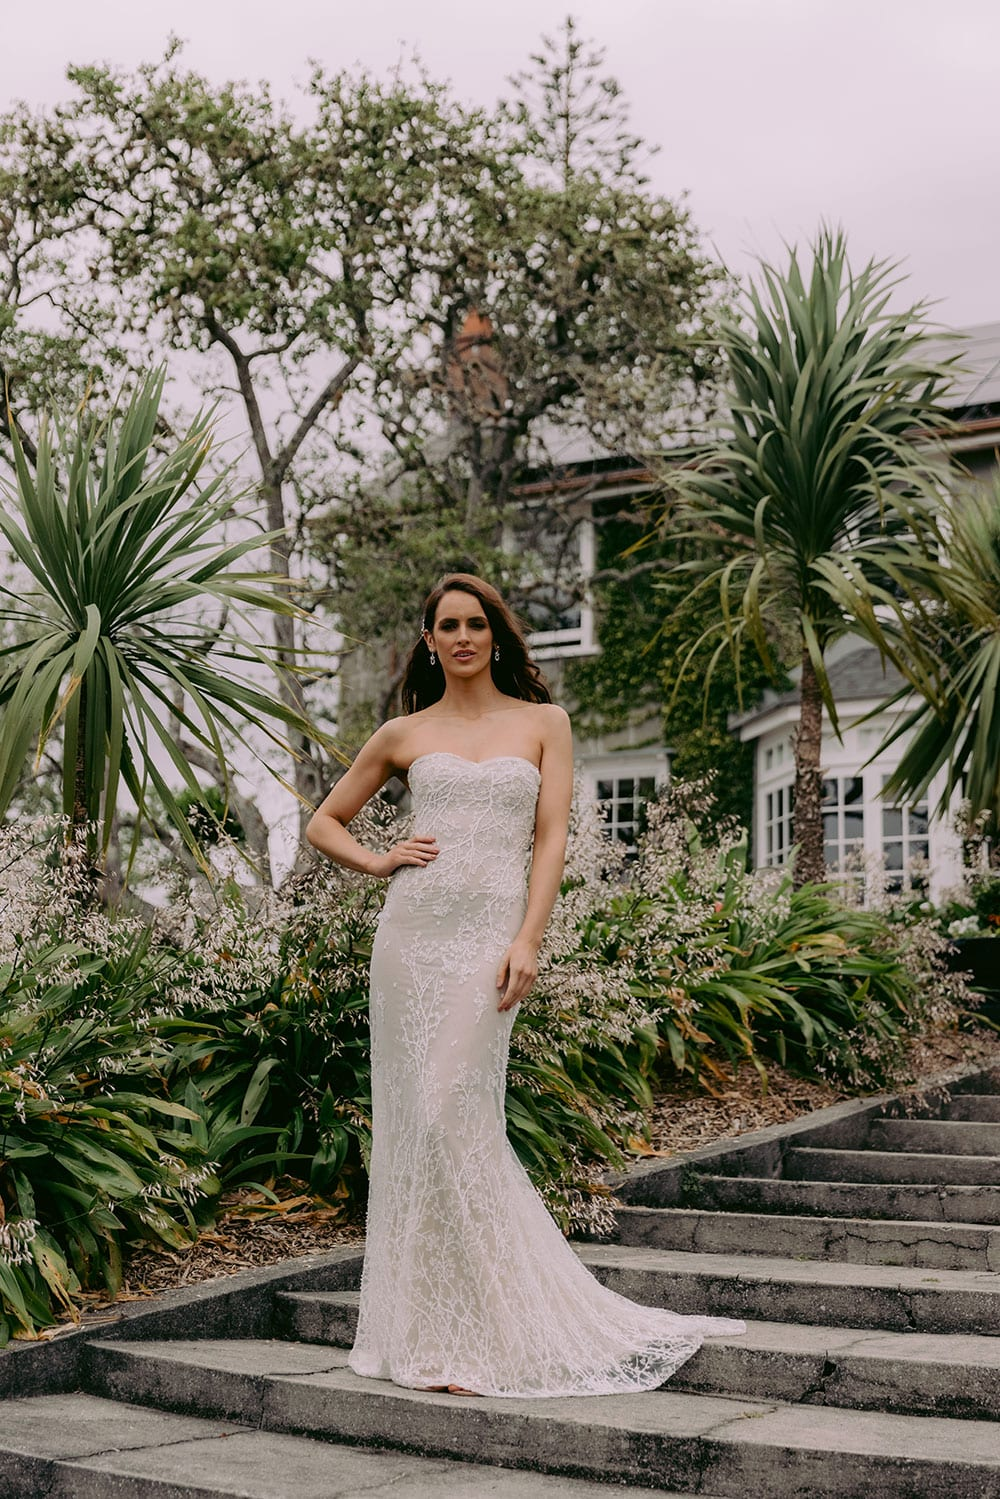 Nera Wedding gown from Vinka Design - Feminine, form-fitting strapless lace wedding dress. Boned stretch base that sculpts and hugs the figure with delicate blossom lace appliqued by hand in to flatter the shape of the body. Model wearing gown in Clevedon Gardens near Auckland.